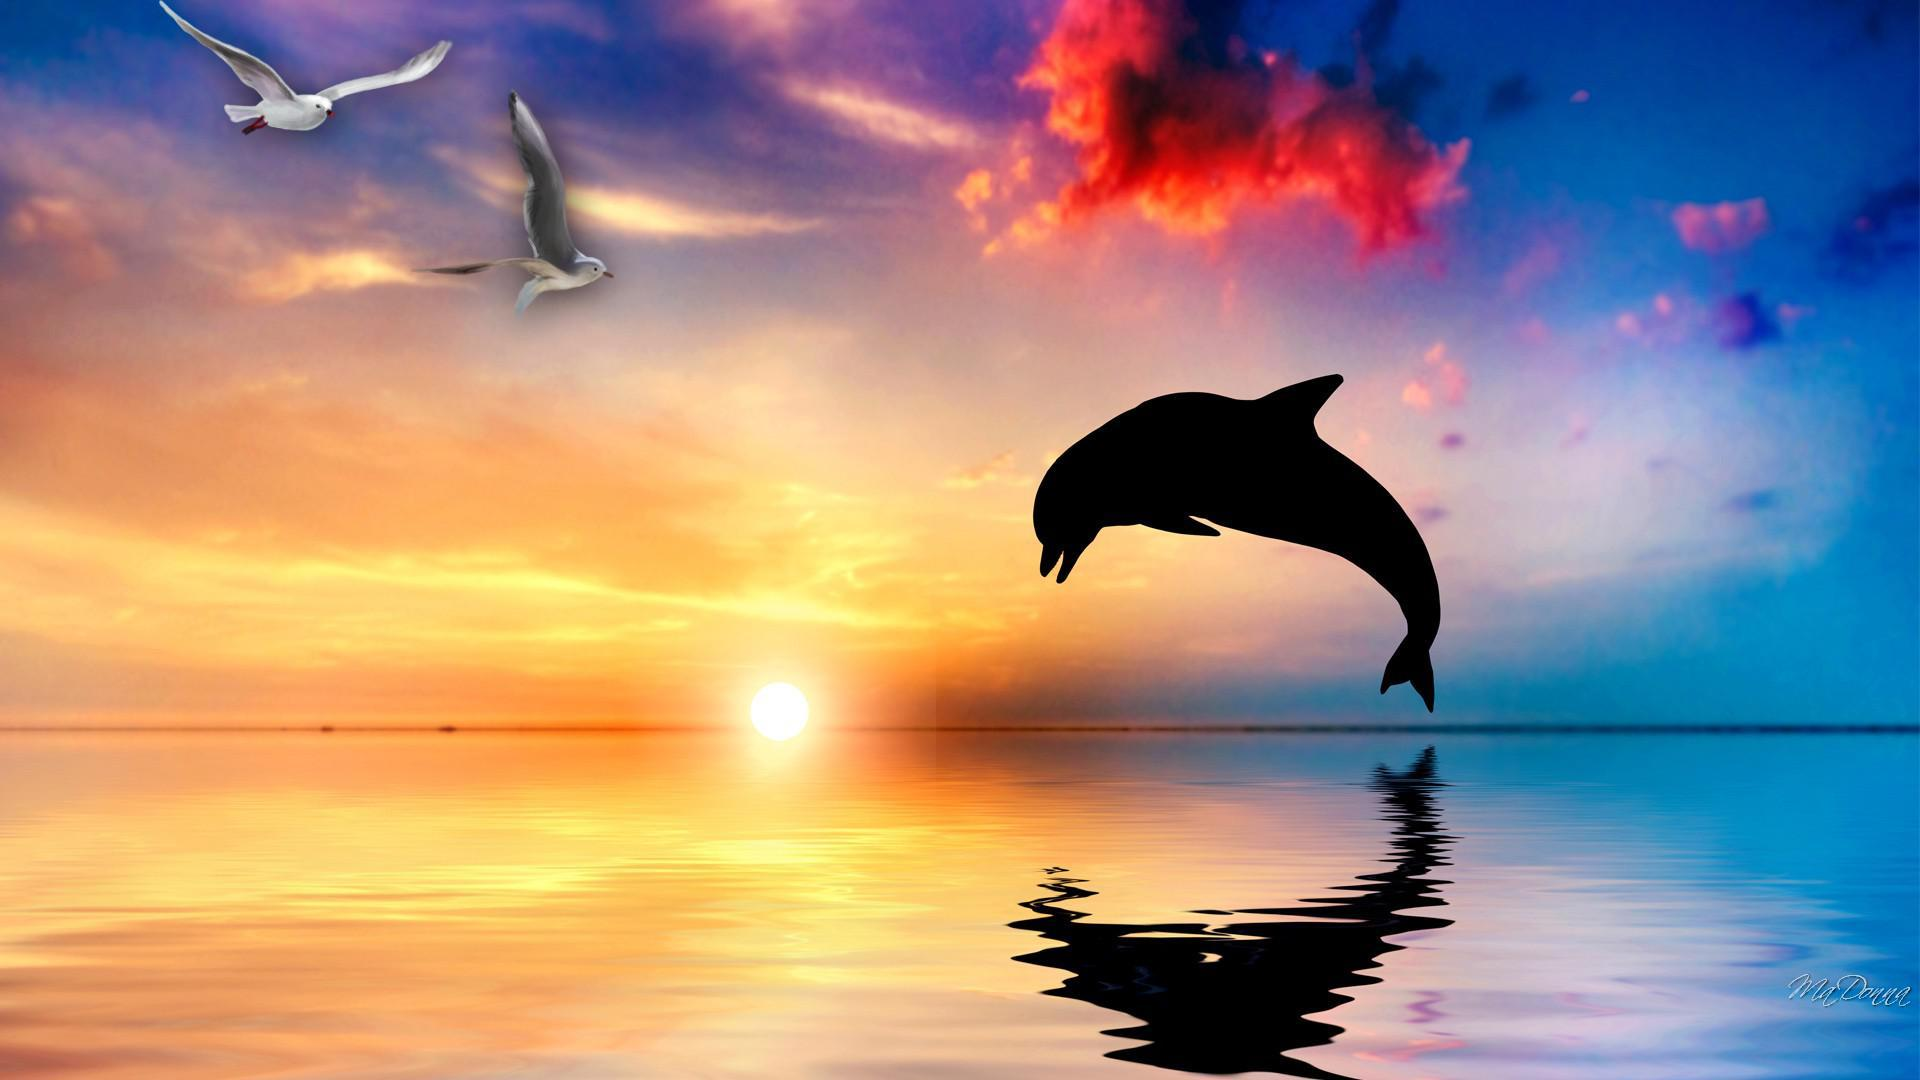 Cute Dolphin Wallpaper Desktop Dolphin Wallpapers Hd Pixelstalk Net